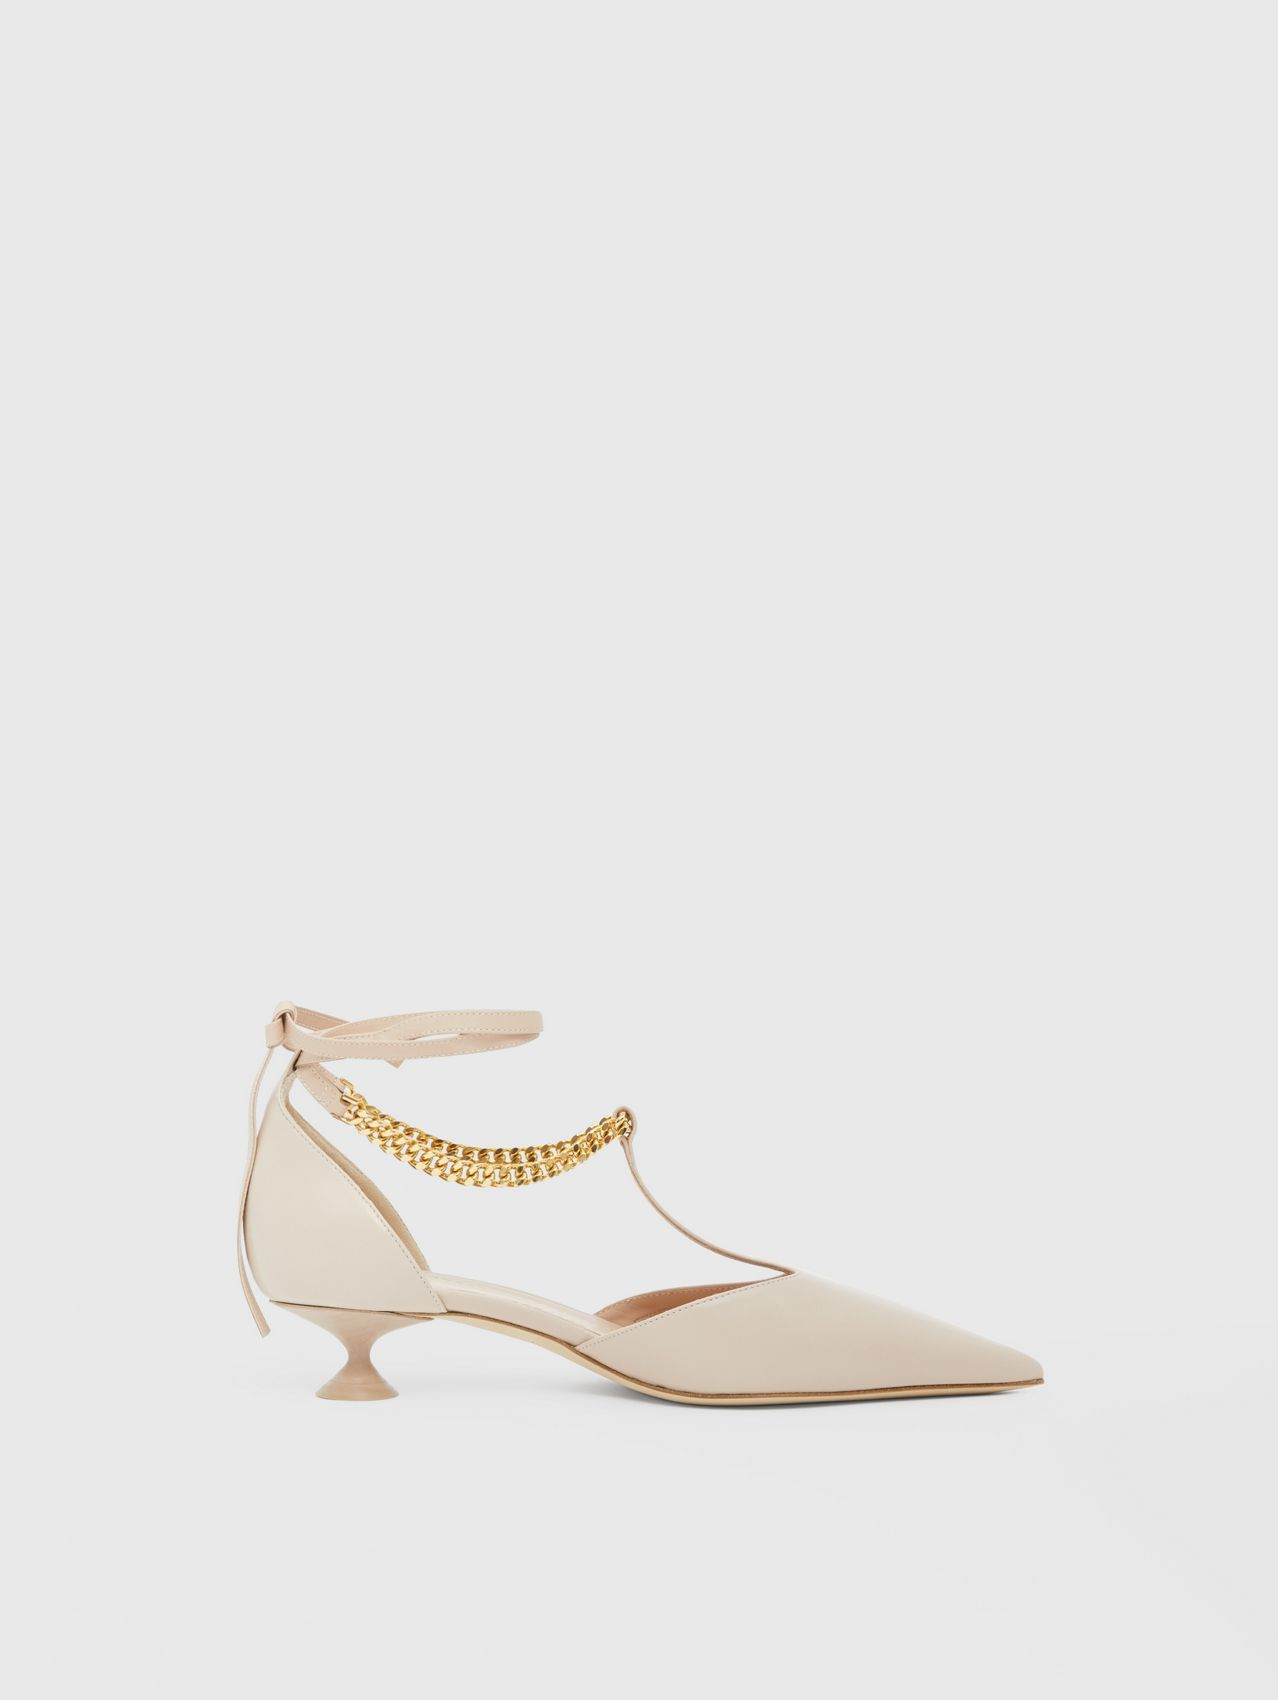 Chain Detail Lambskin Pumps in Nude